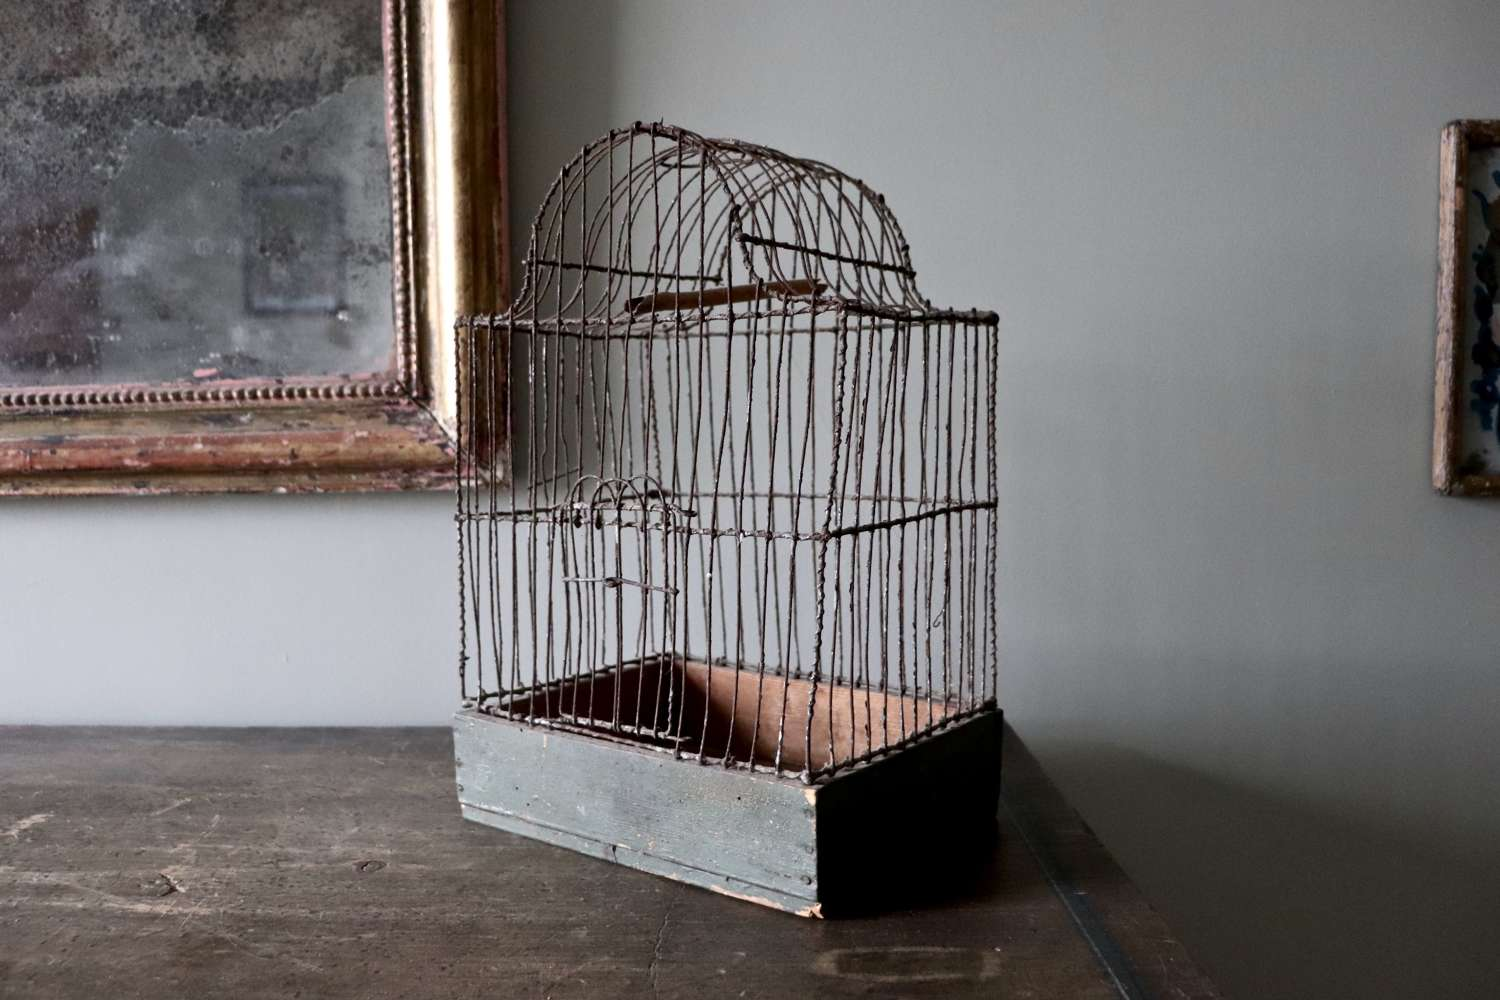 Early 20th century wooden birdcage